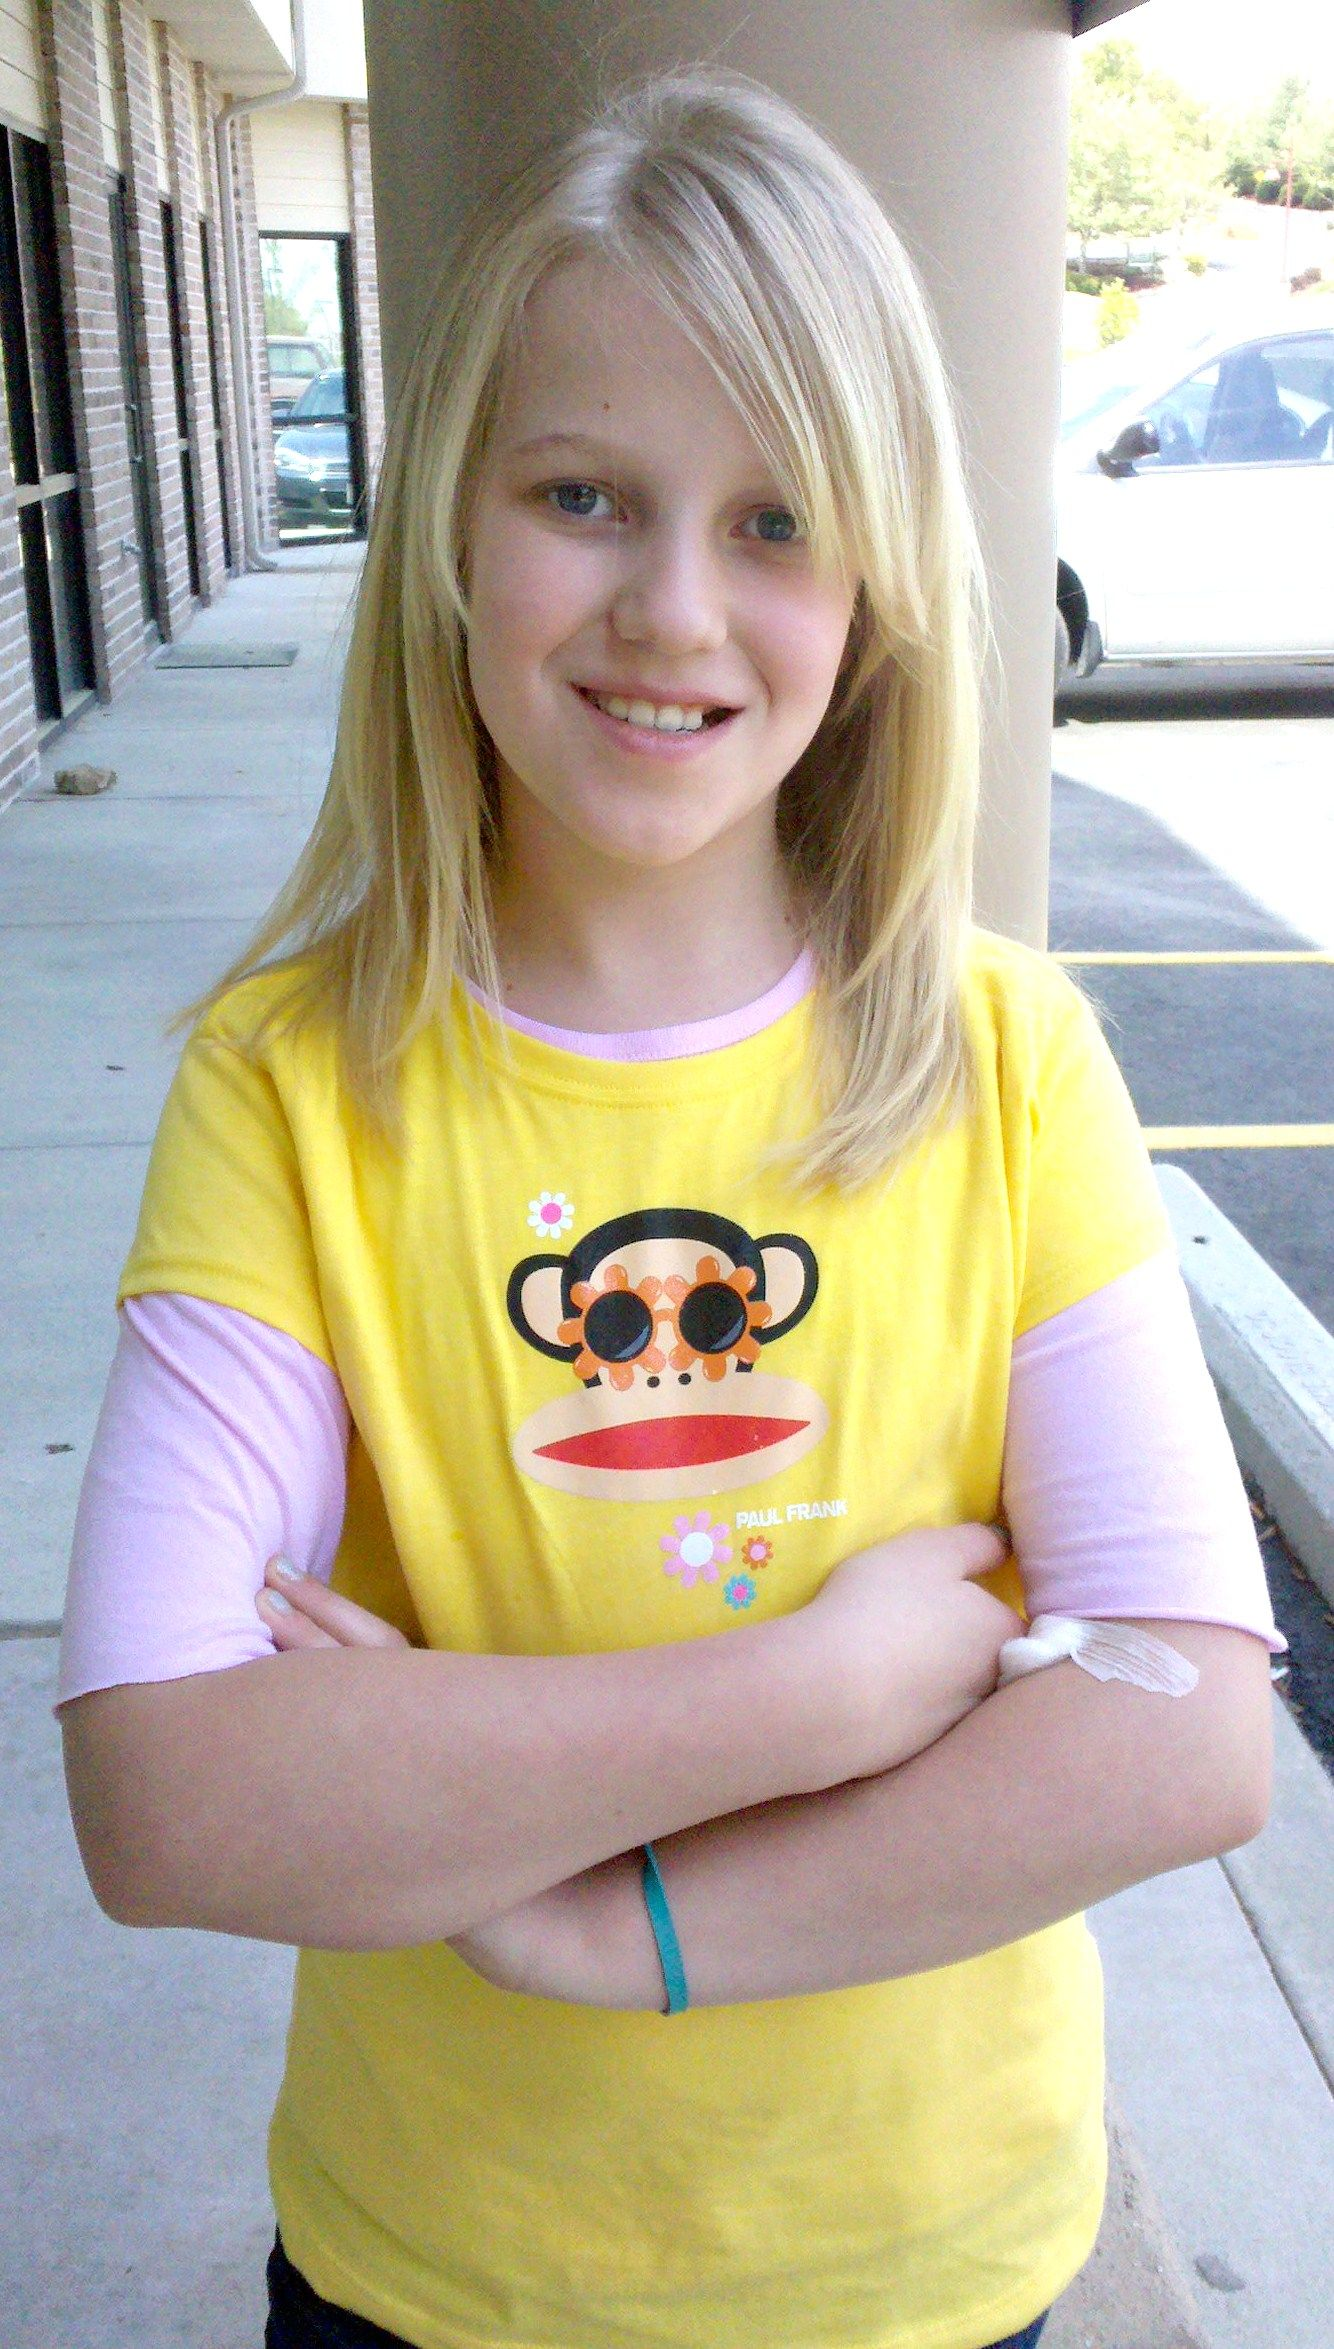 images of haircuts for 10 year old girl - google search